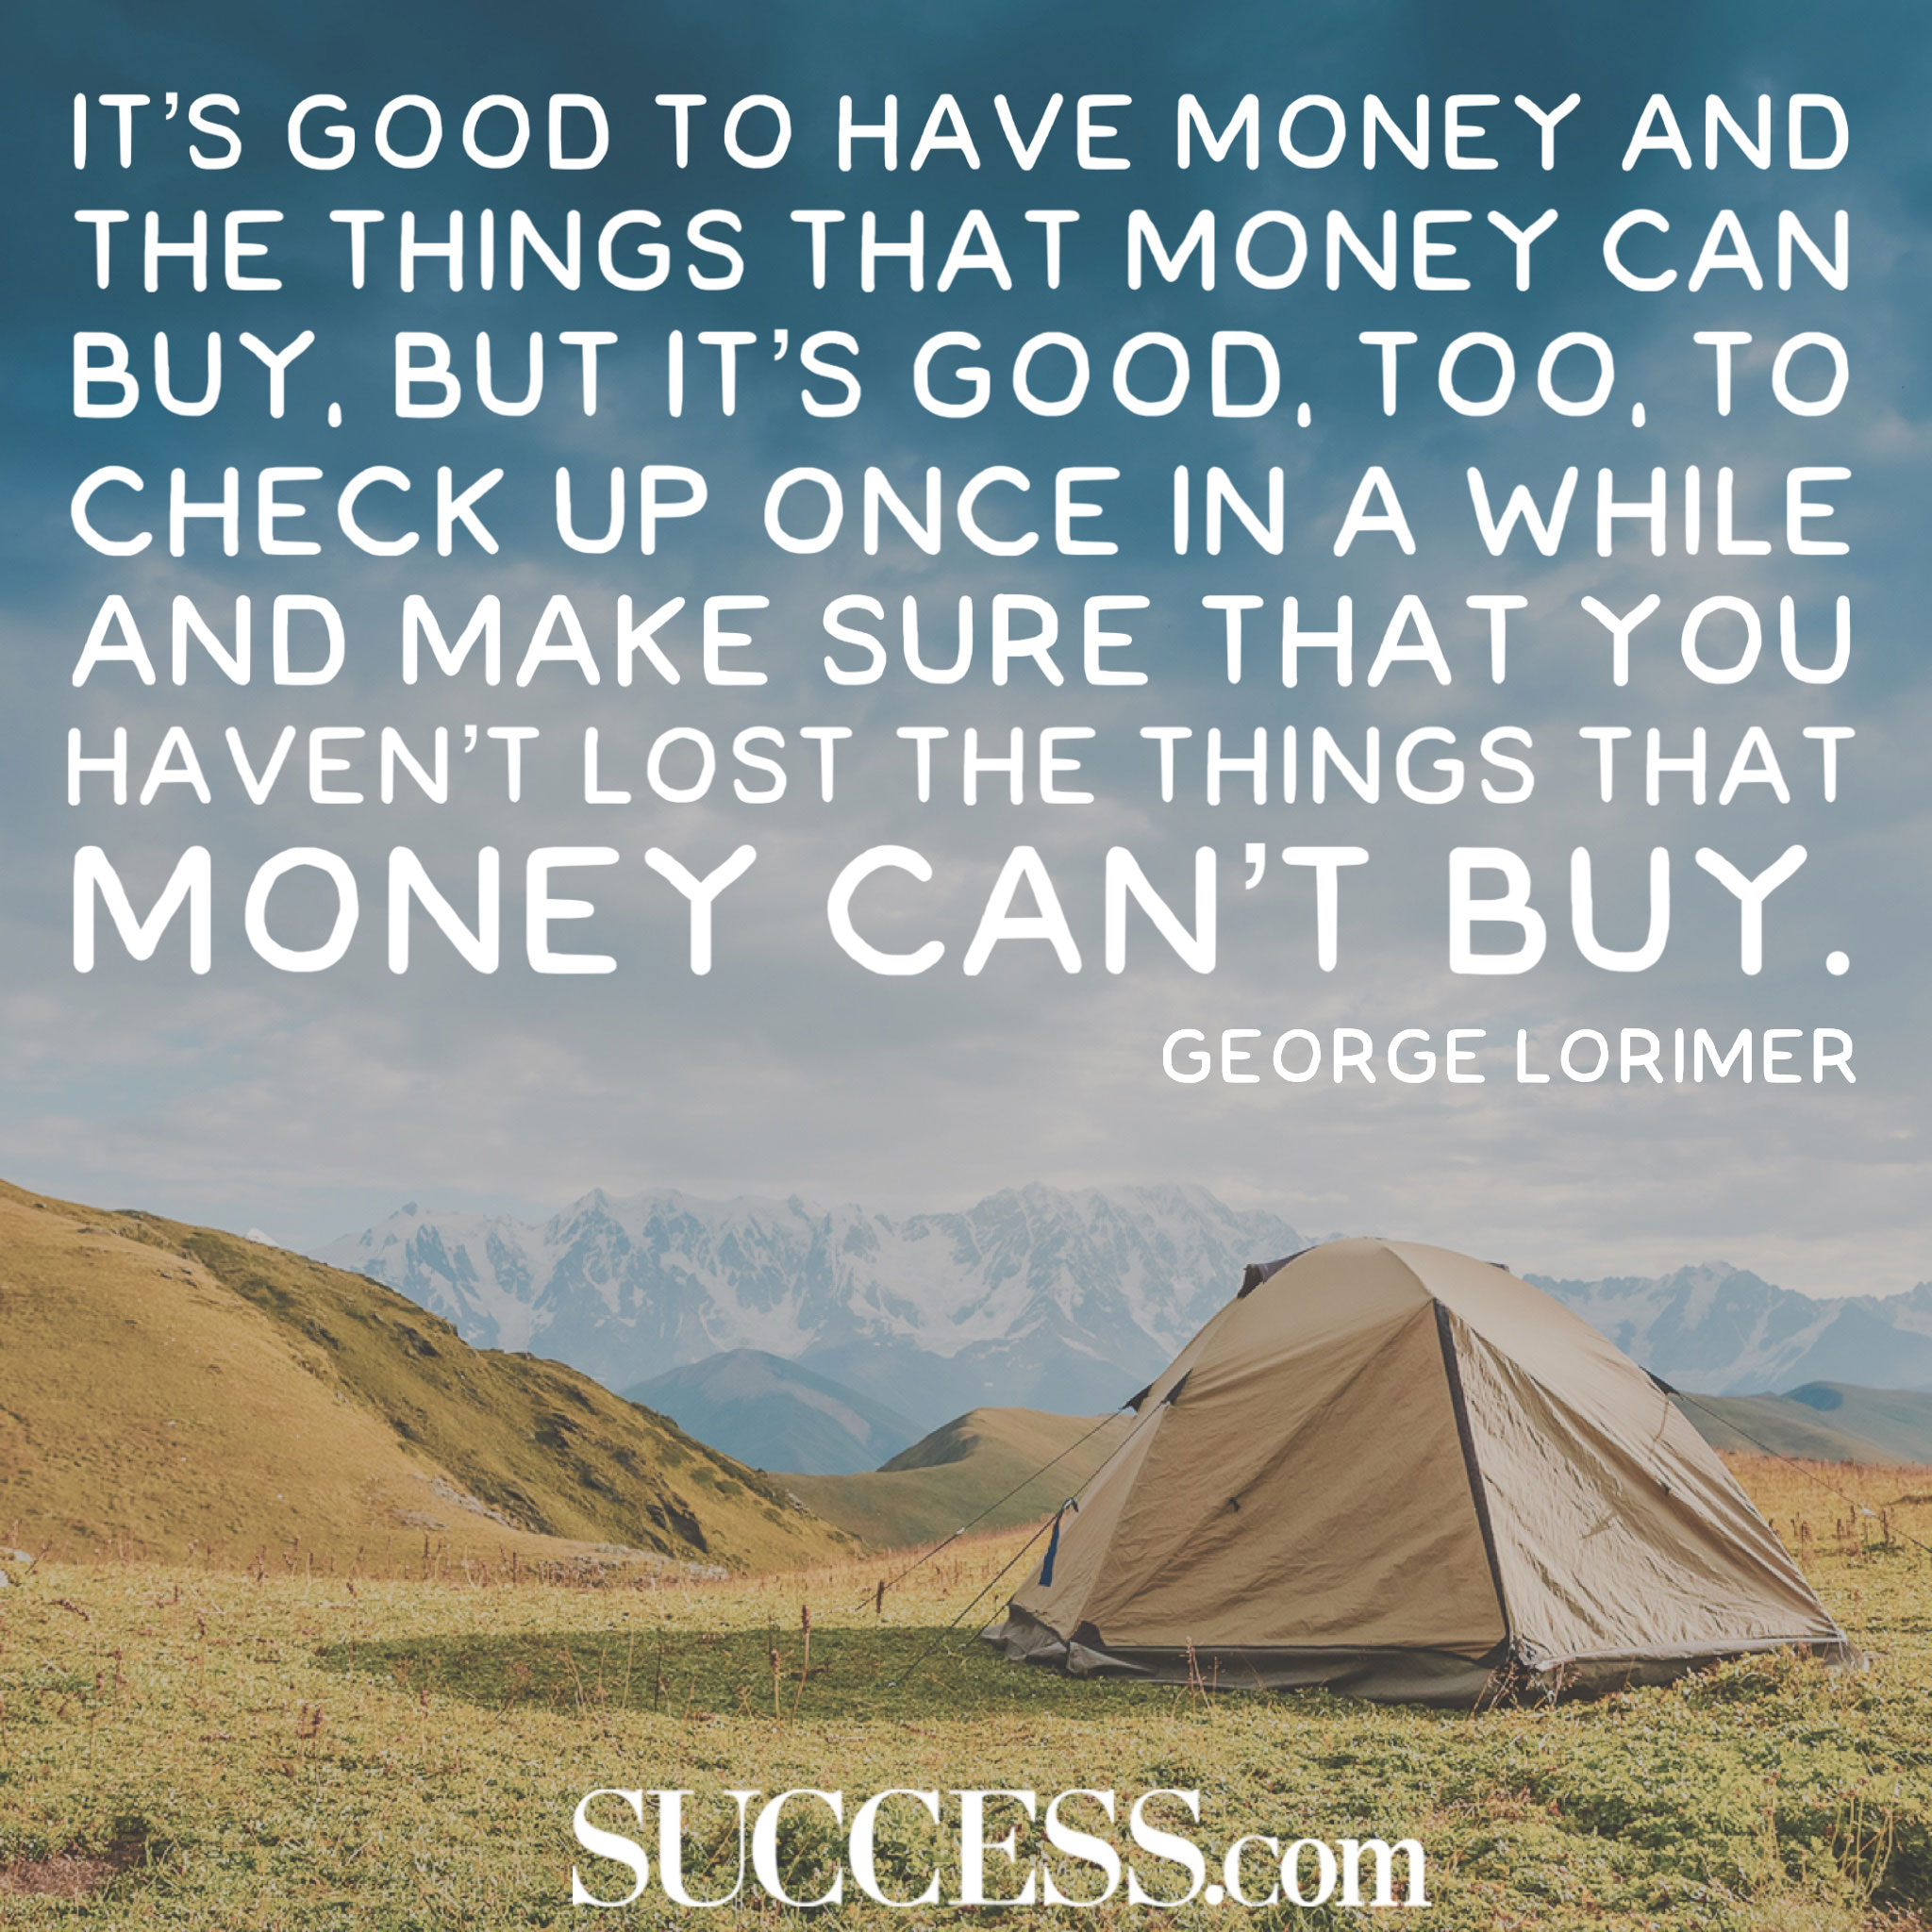 Quotes About Money: 19 Wise Money Quotes